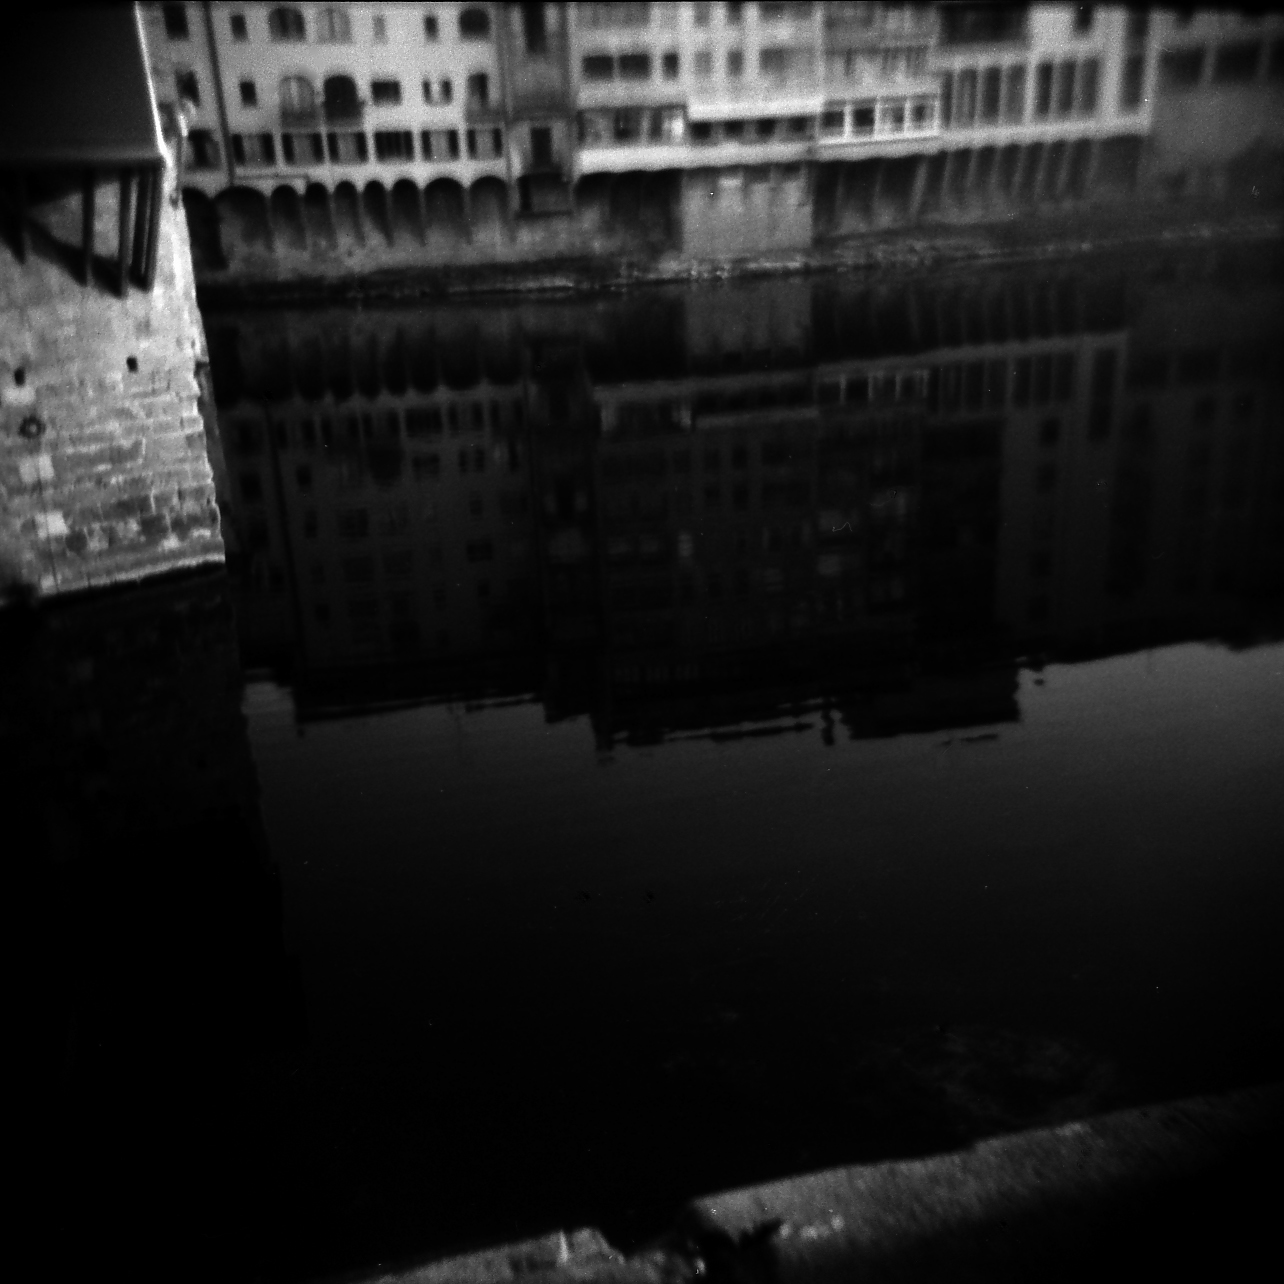 florence river reflect.jpg